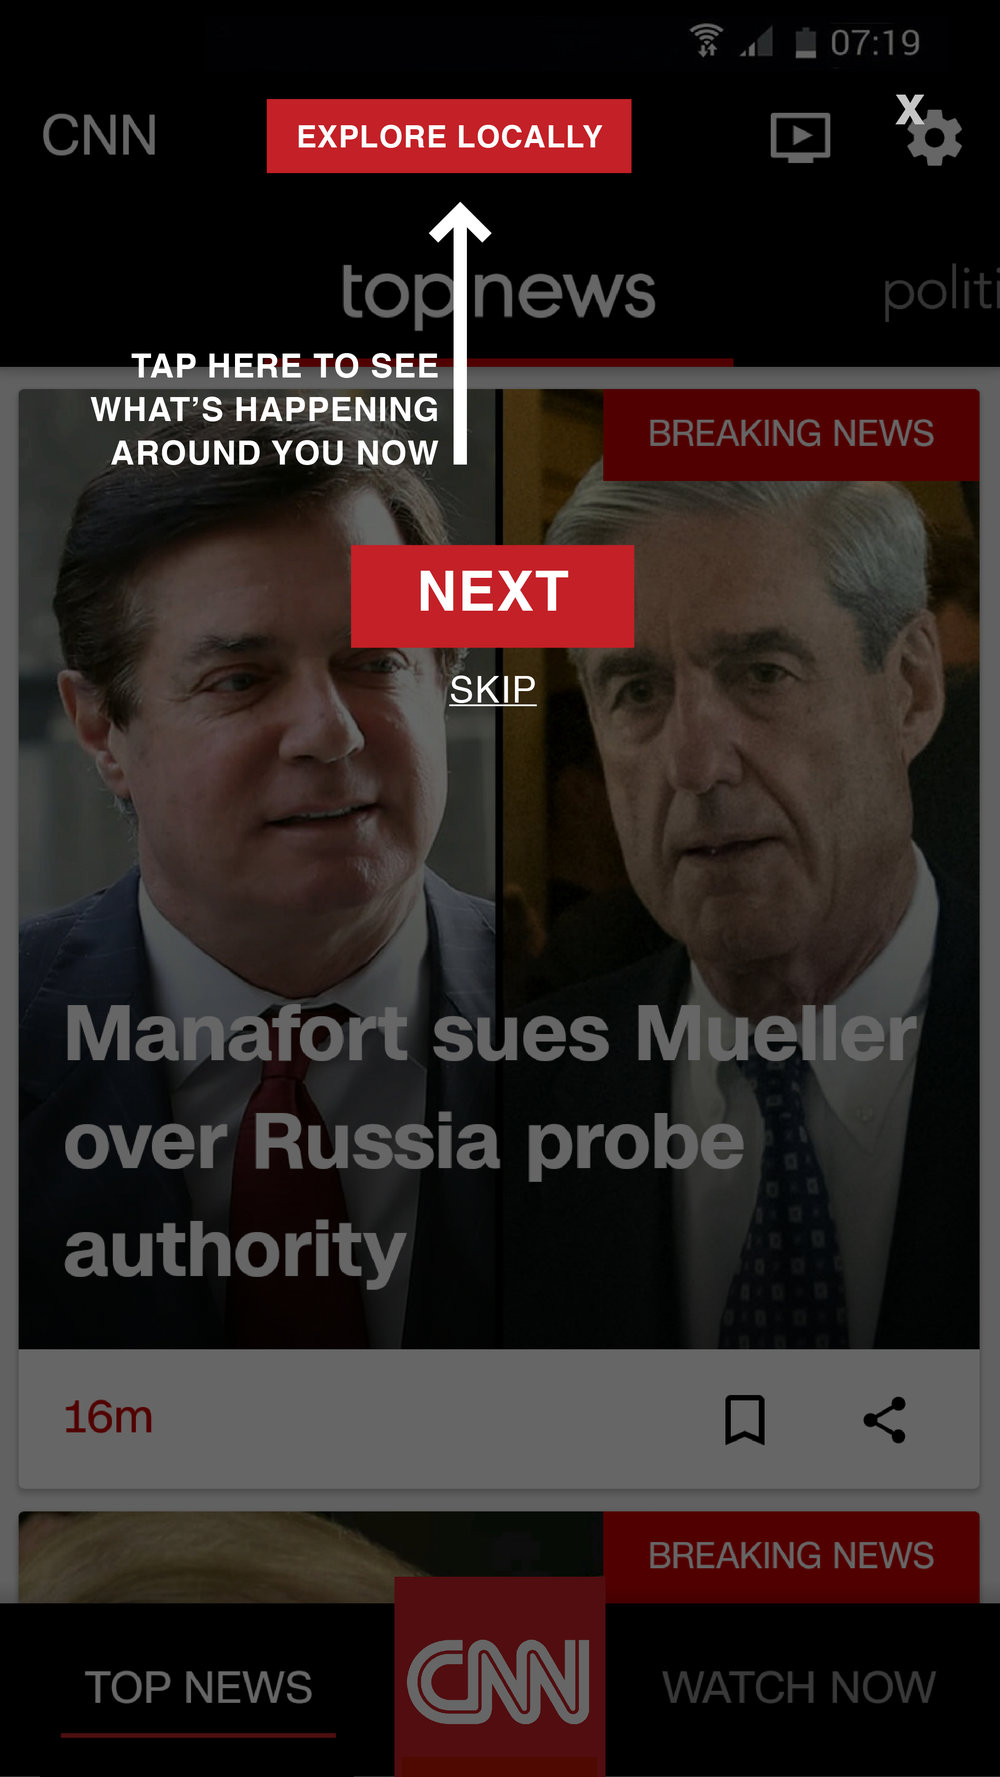 CNN App Home Page